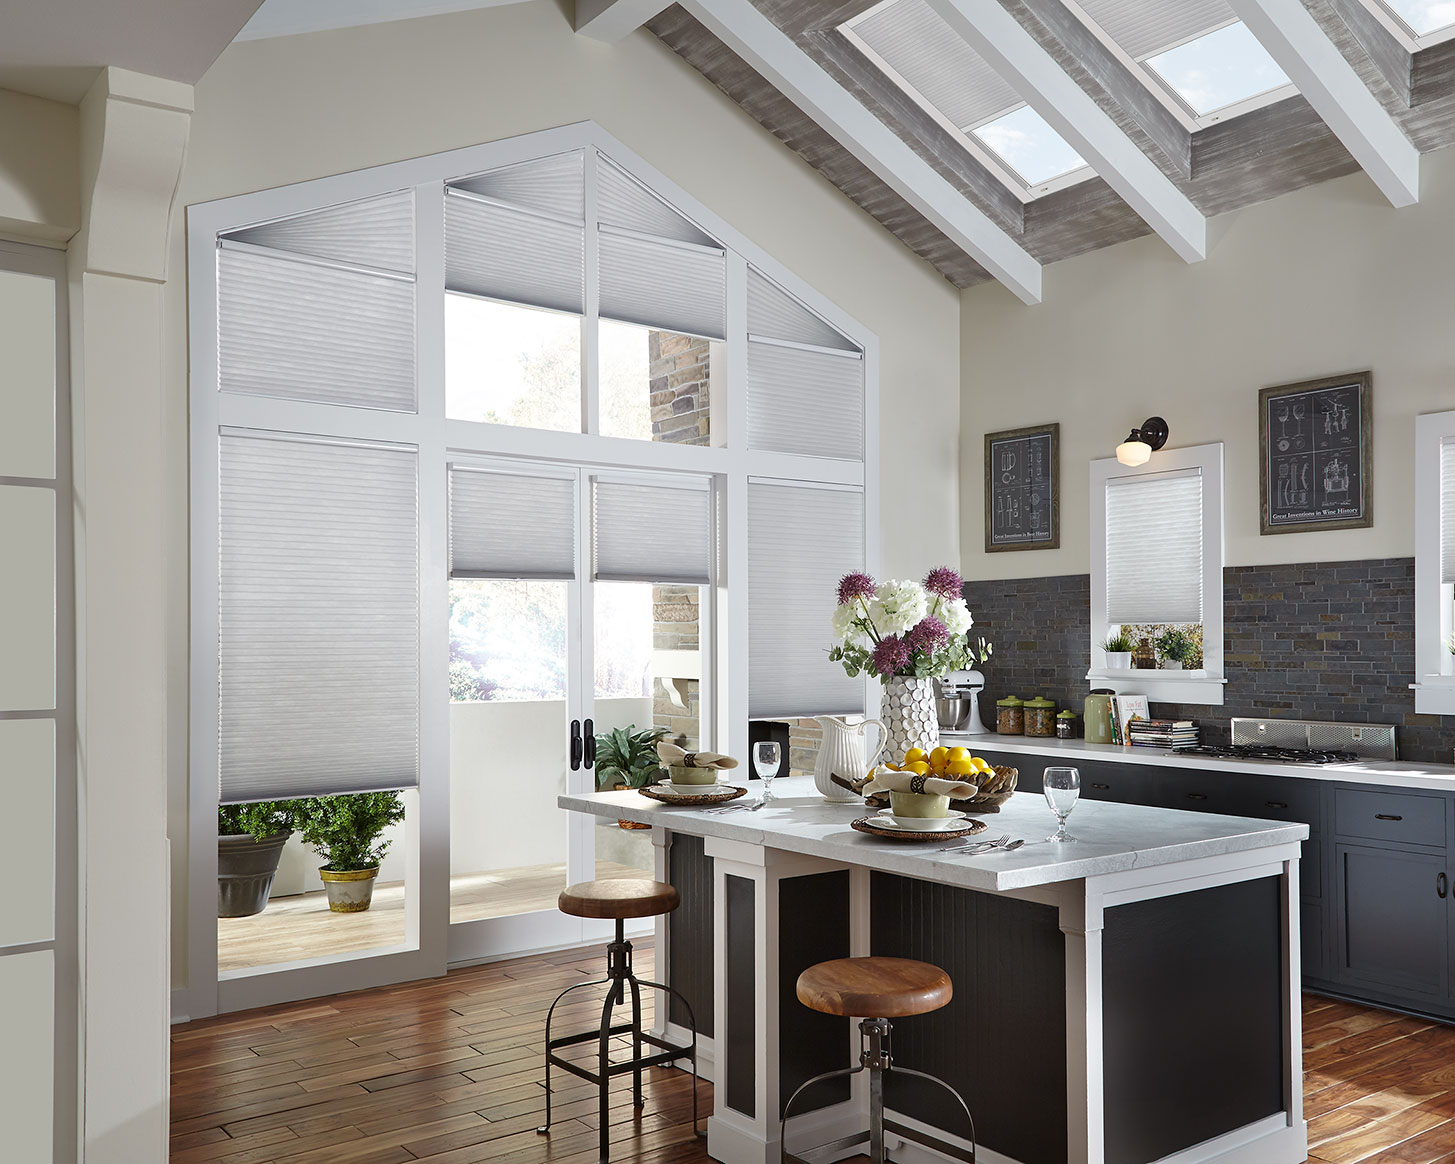 Off-white cellular shades treat an arched wall of windows and skylights in an open space kitchen area with a large island and wood floors.